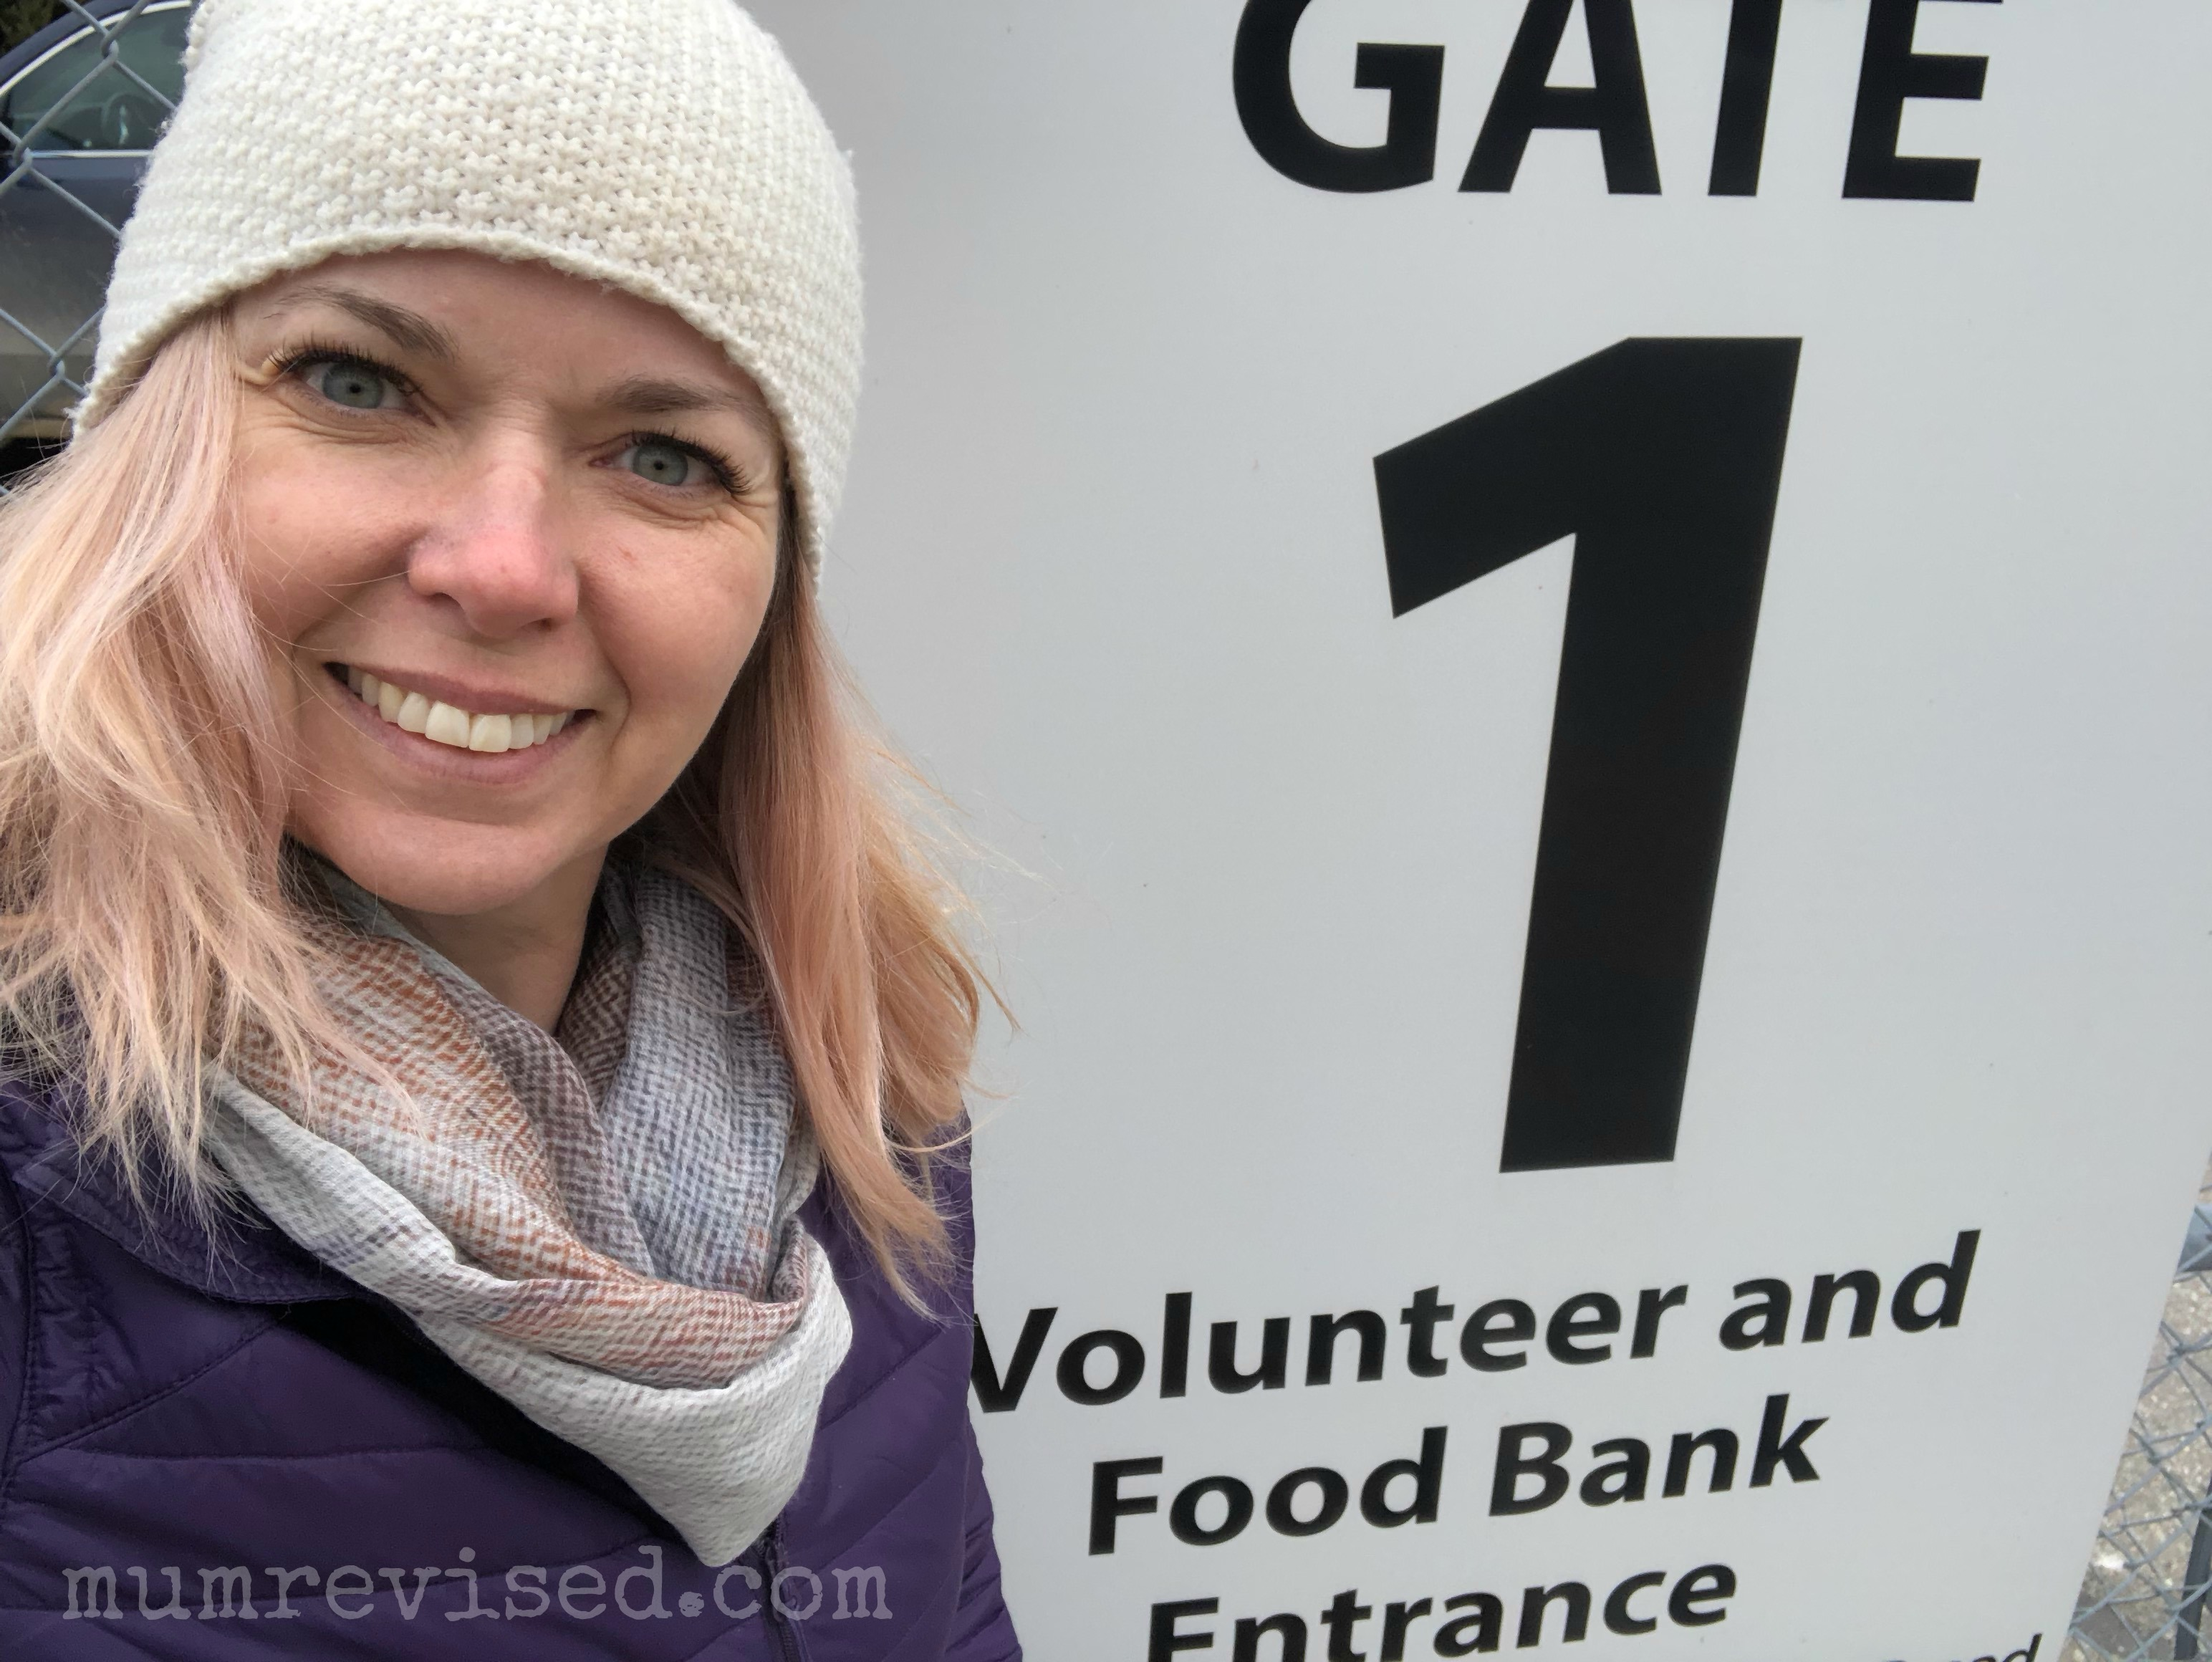 Week 17: Volunteering at a Food Bank